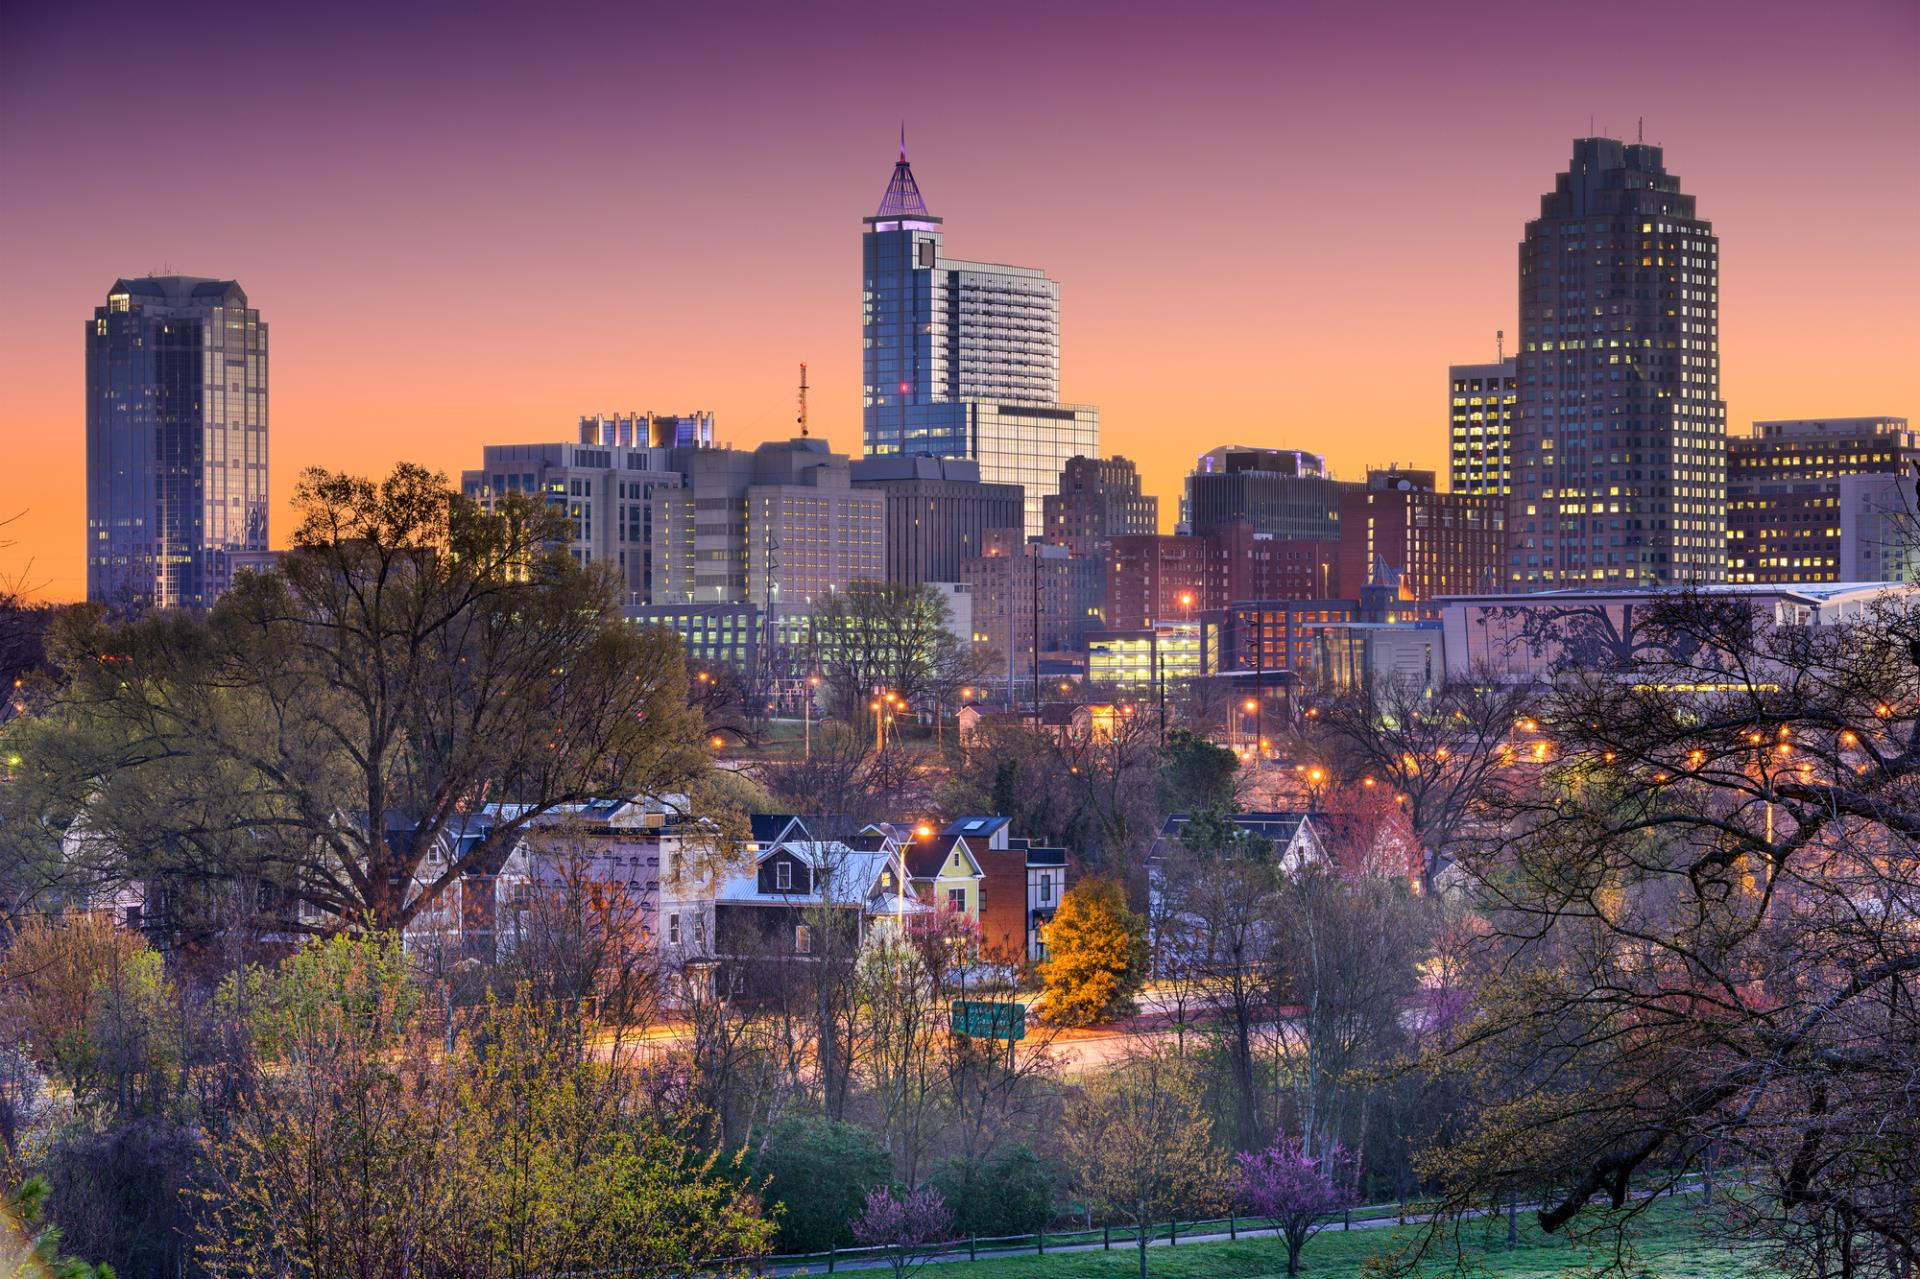 City of Winston-Salem skyline